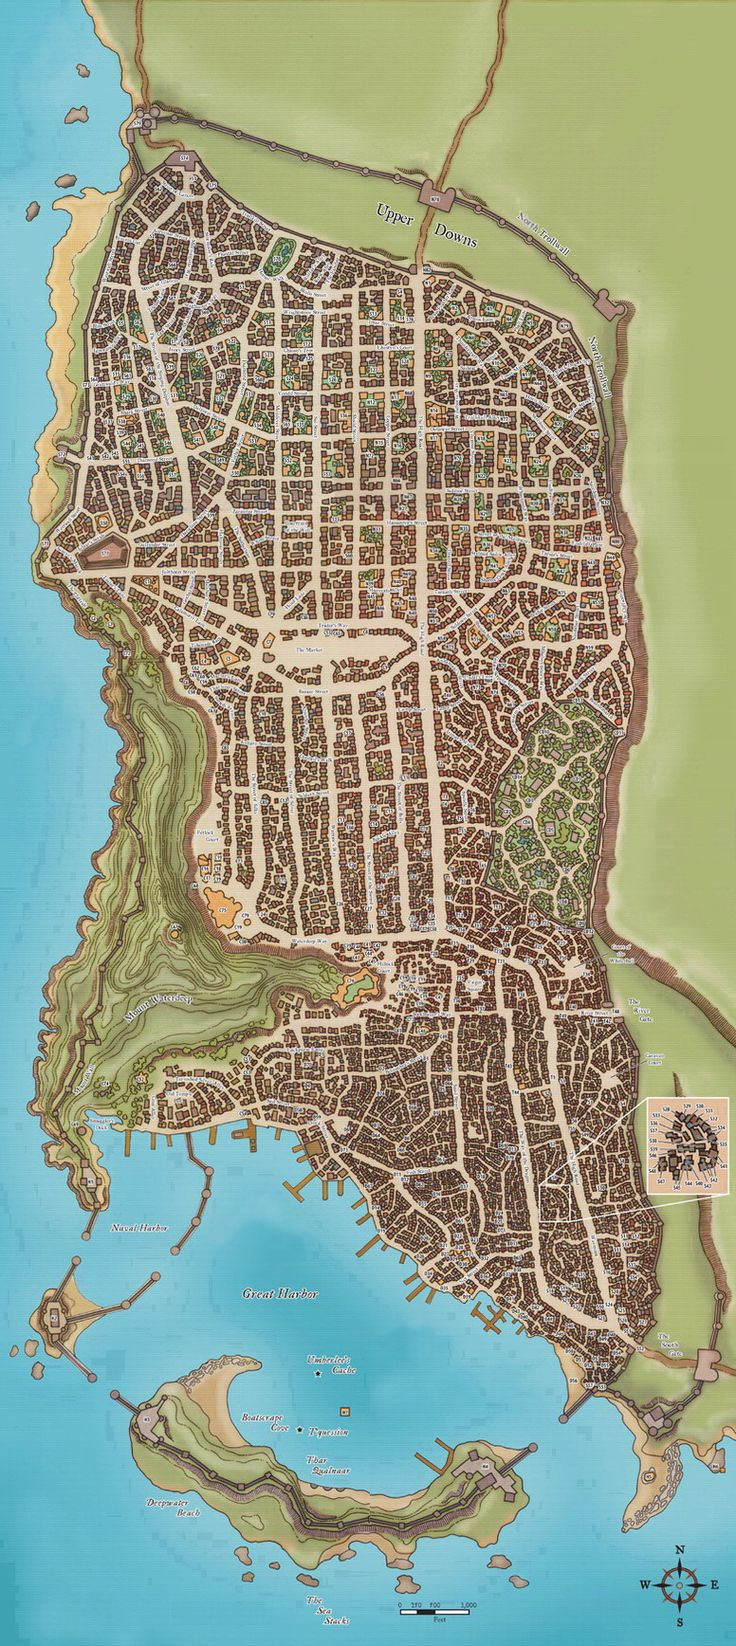 "Waterdeep, also known as the City of Splendors or the Crown of the North, was the most important and influential city in the North and perhaps in all Faerûn. For this reason it was considered part of the Western Heartlands of the Realms, even though it lay 150 miles north of Daggerford on the shores of the Sword Coast. The city sat ""slightly above the 45 degree north latitude line on Toril."" The road to Waterdeep was well paved and well patrolled. The city was the hub of trading from the..."